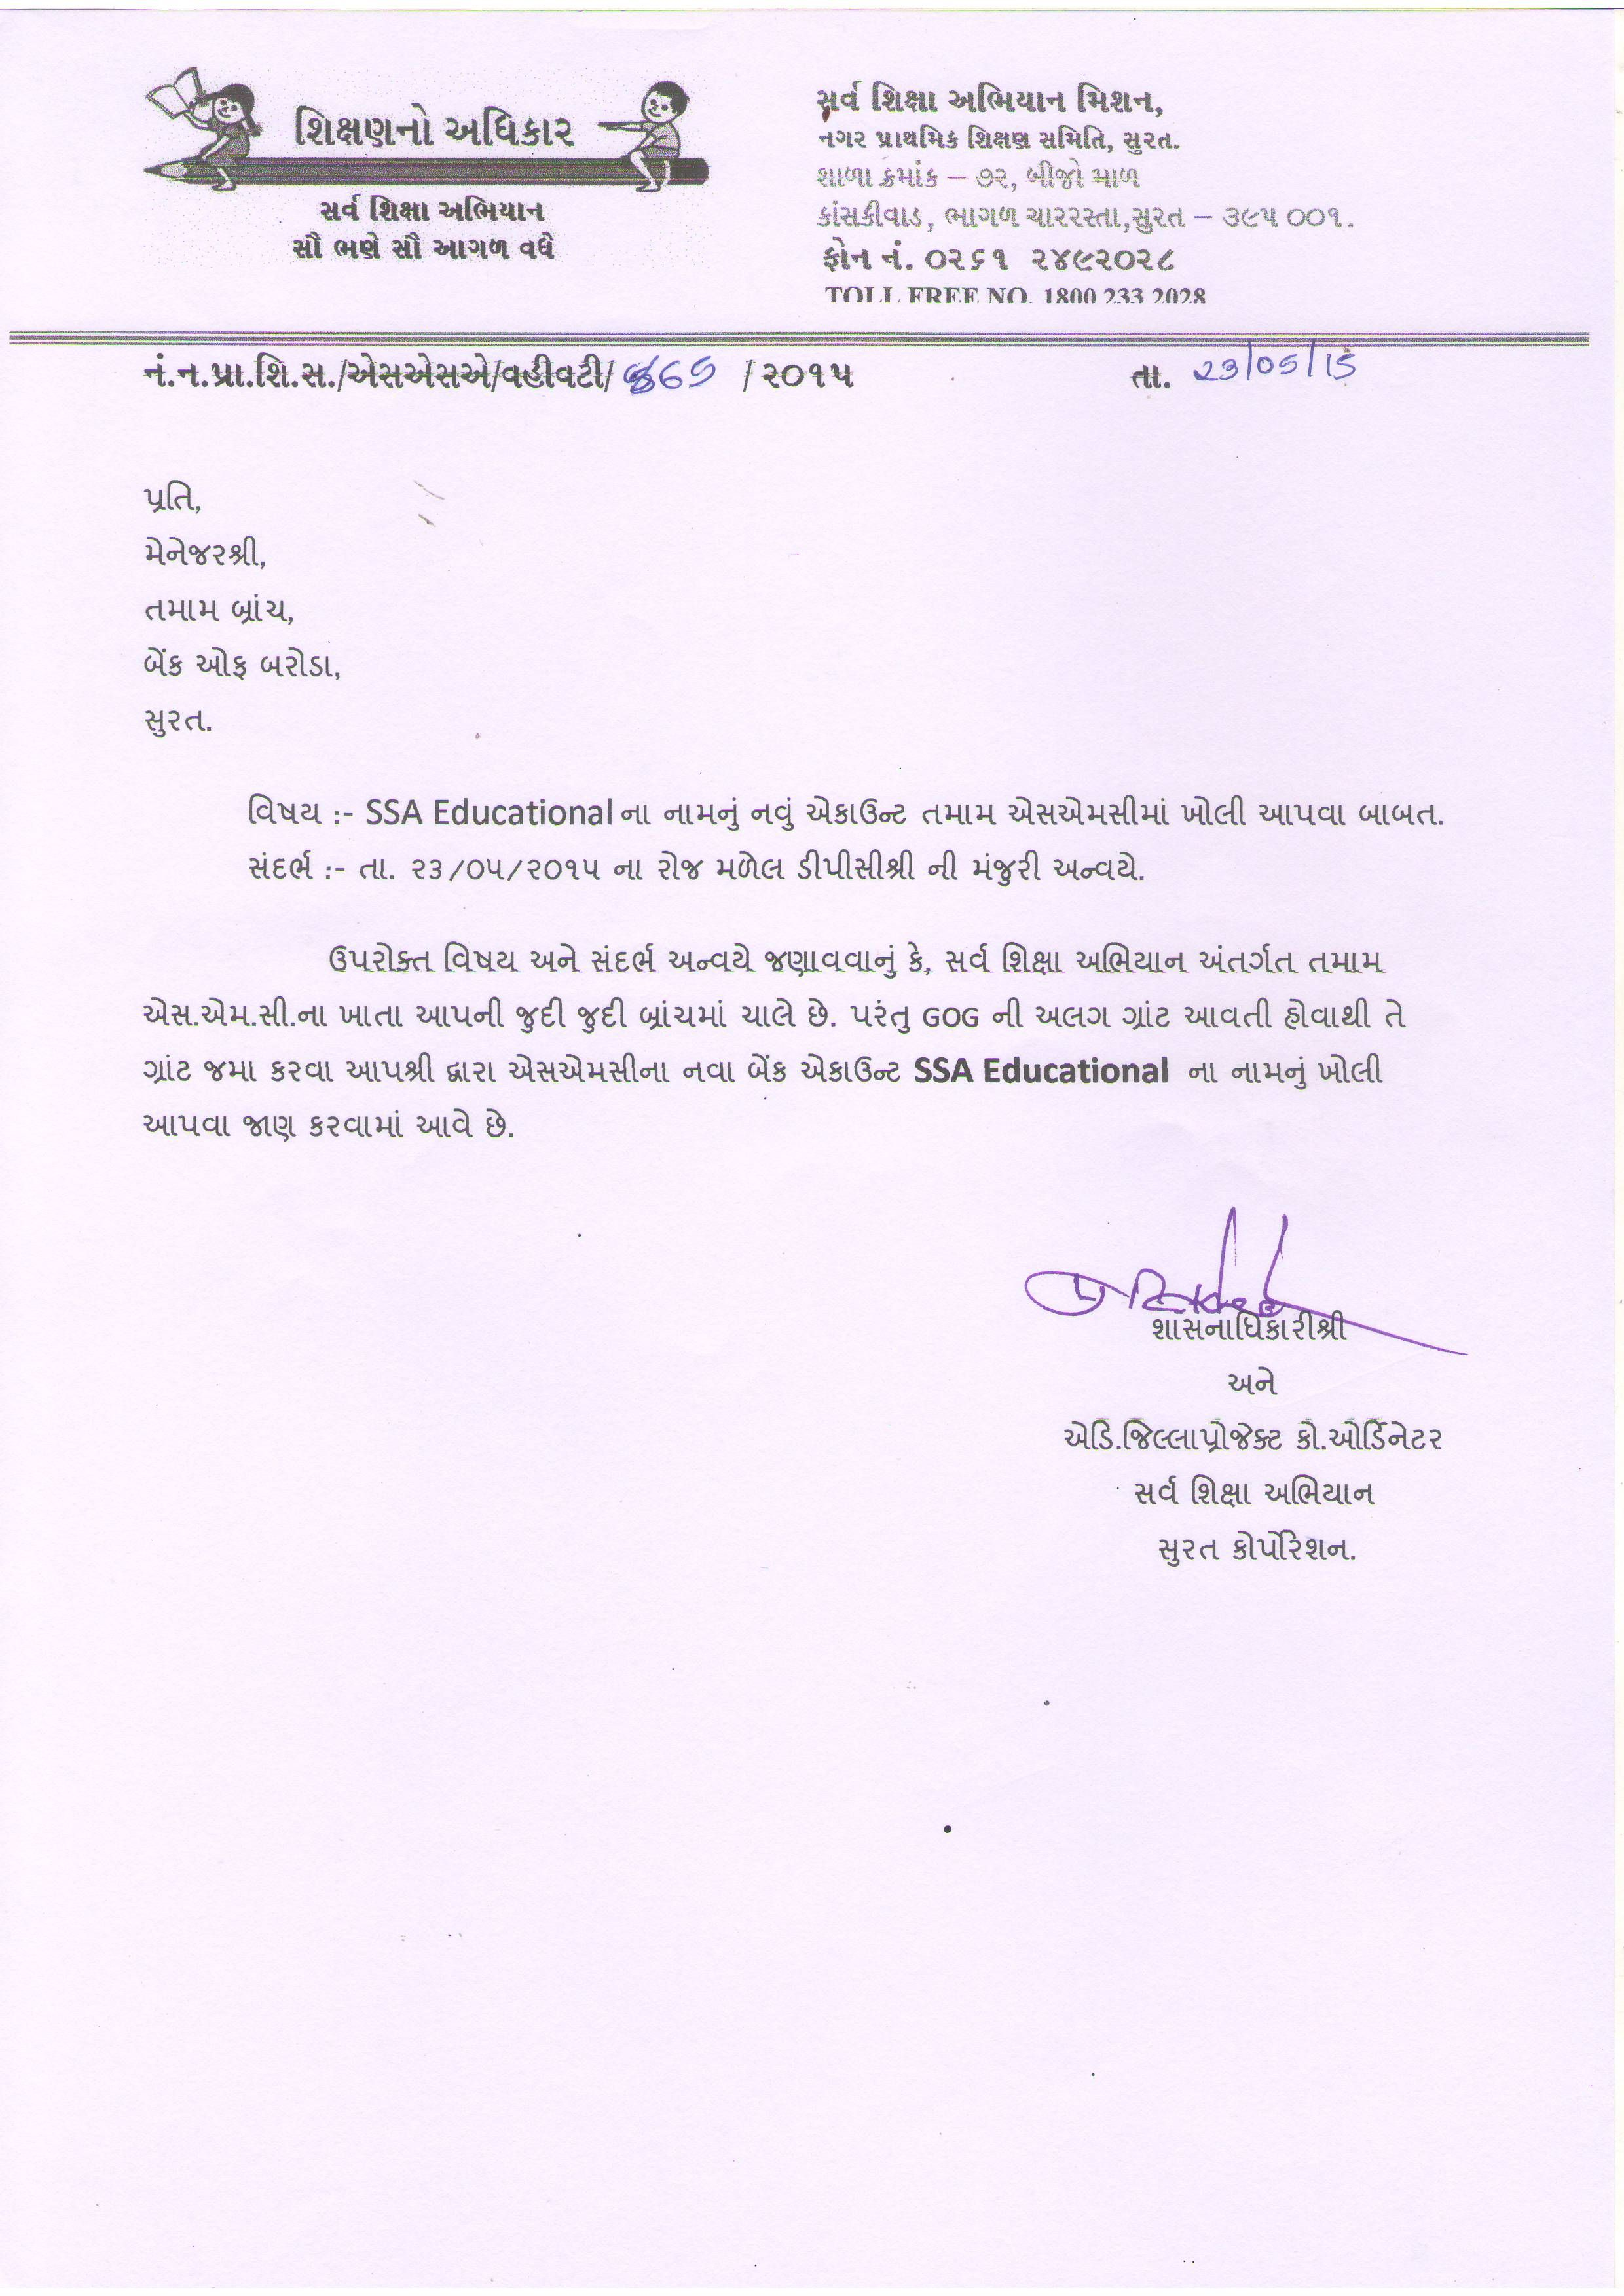 Letter Format To Bank Manager For Account Transfer. write letter bank manager hindi cover templates format for account transfer  Home Design Idea